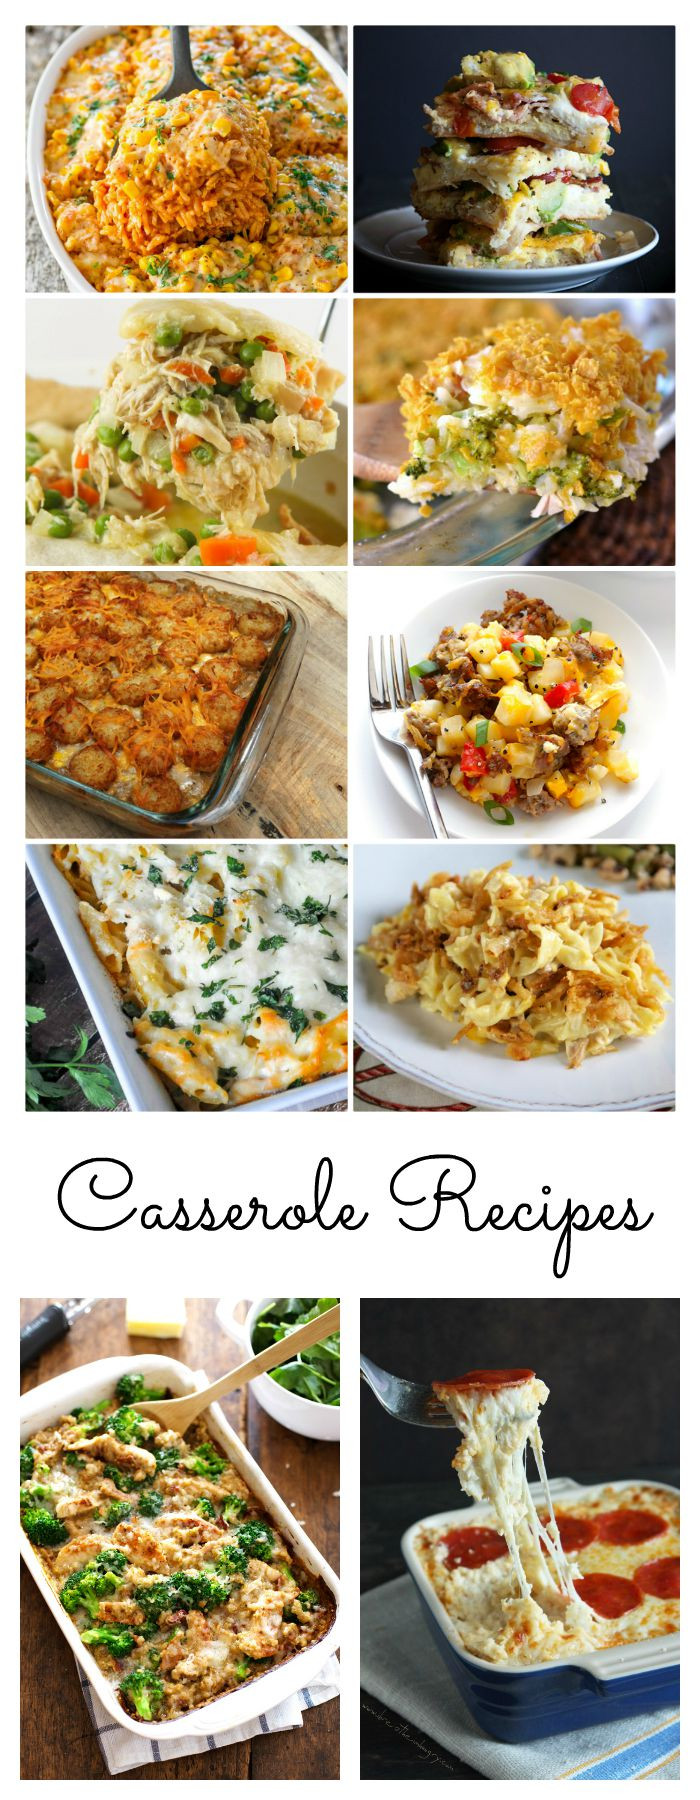 Weekday Dinner Ideas  Casserole Recipes The Idea Room